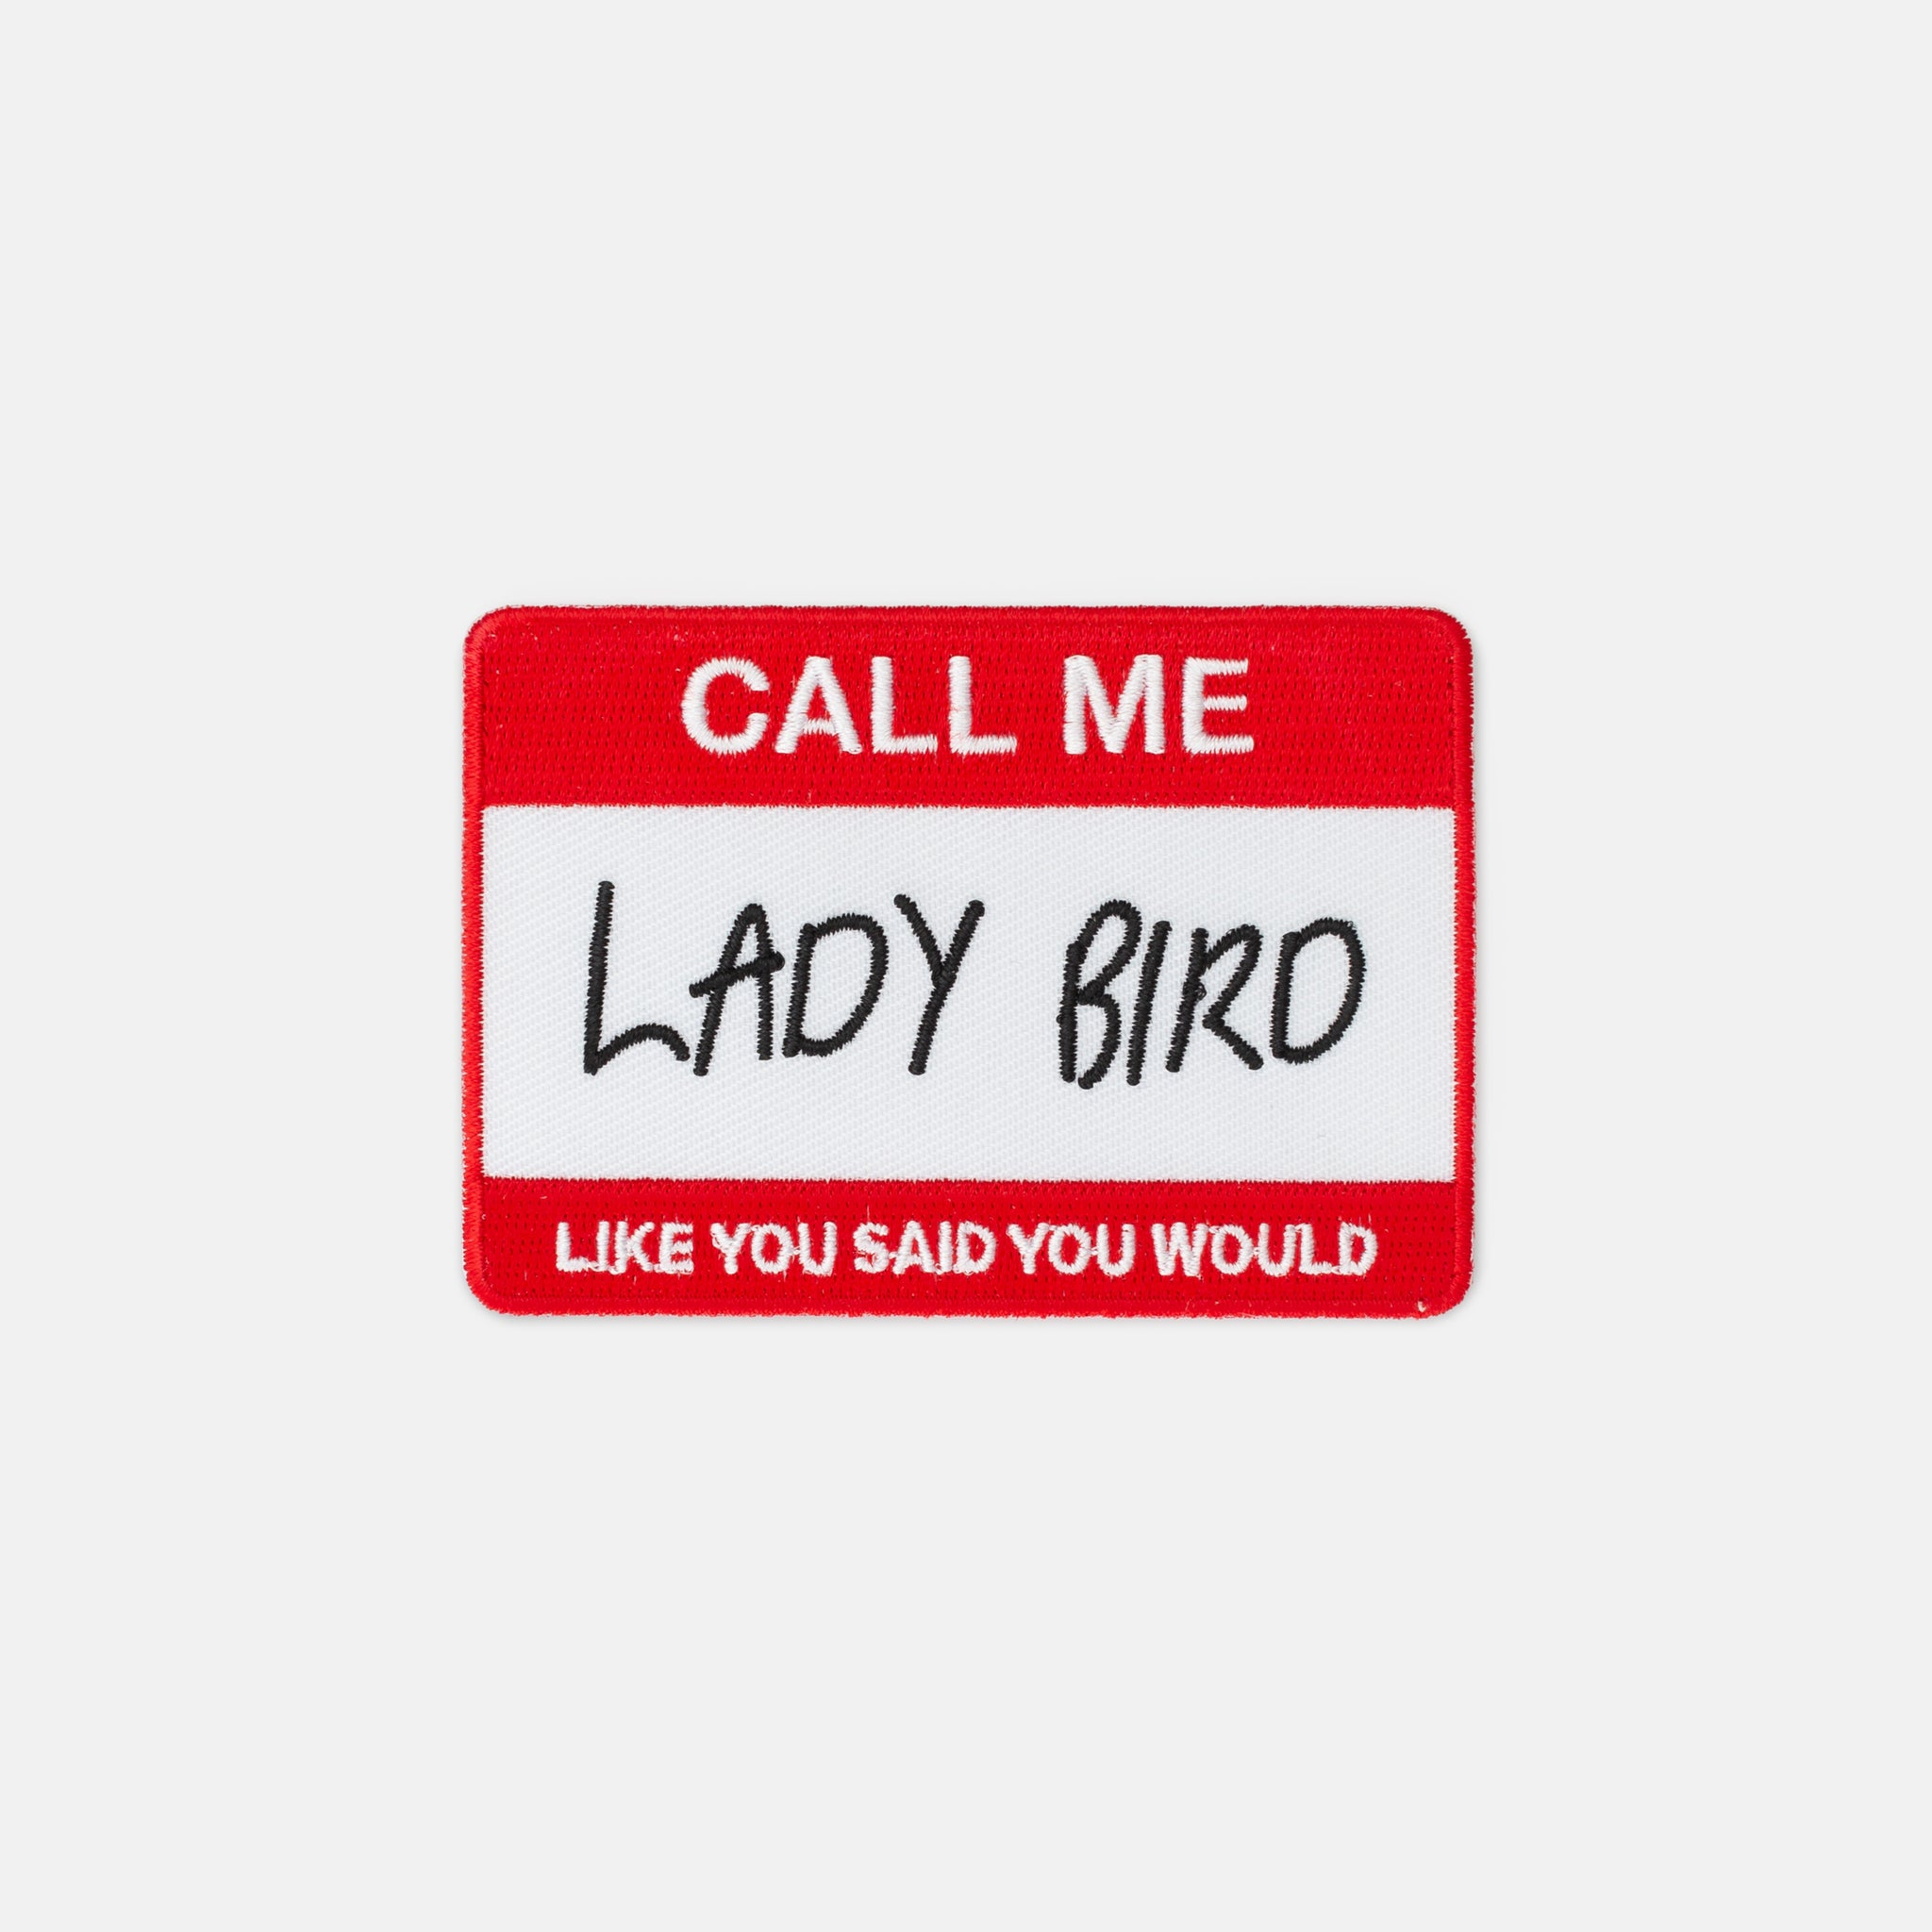 'Lady Bird' Name Patch